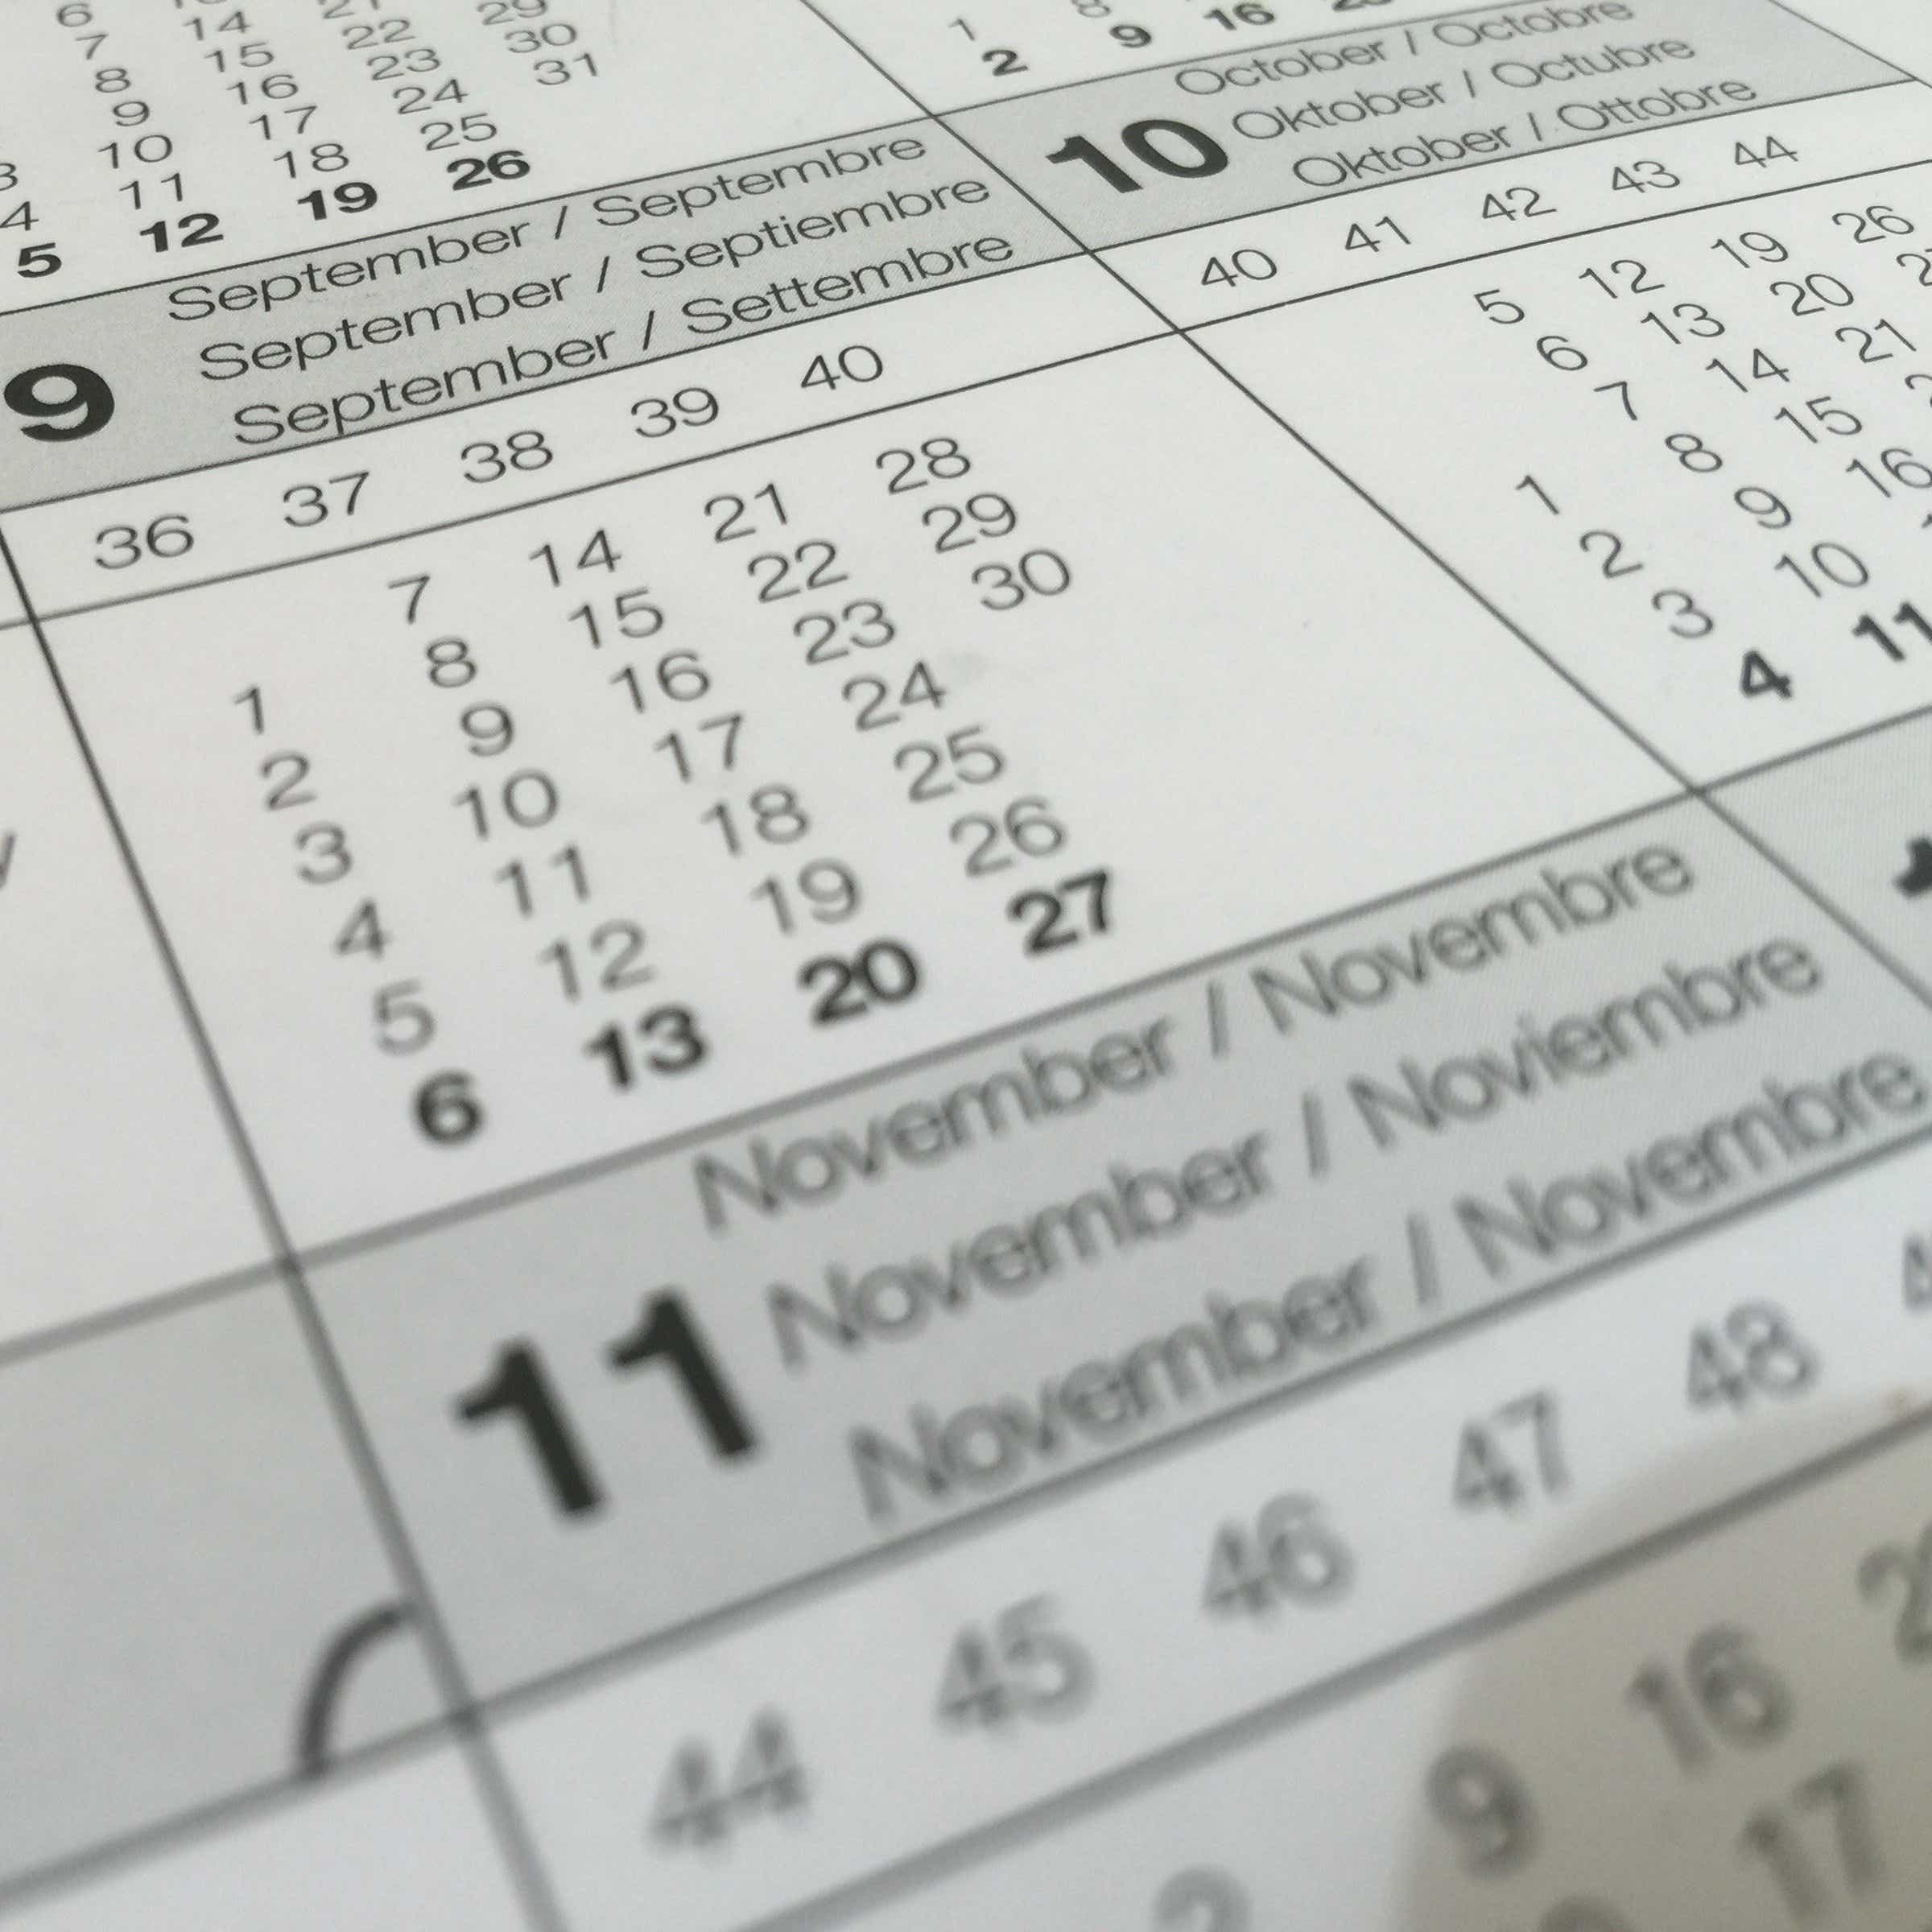 Download link for this staff schedule template. Employee Schedule Template